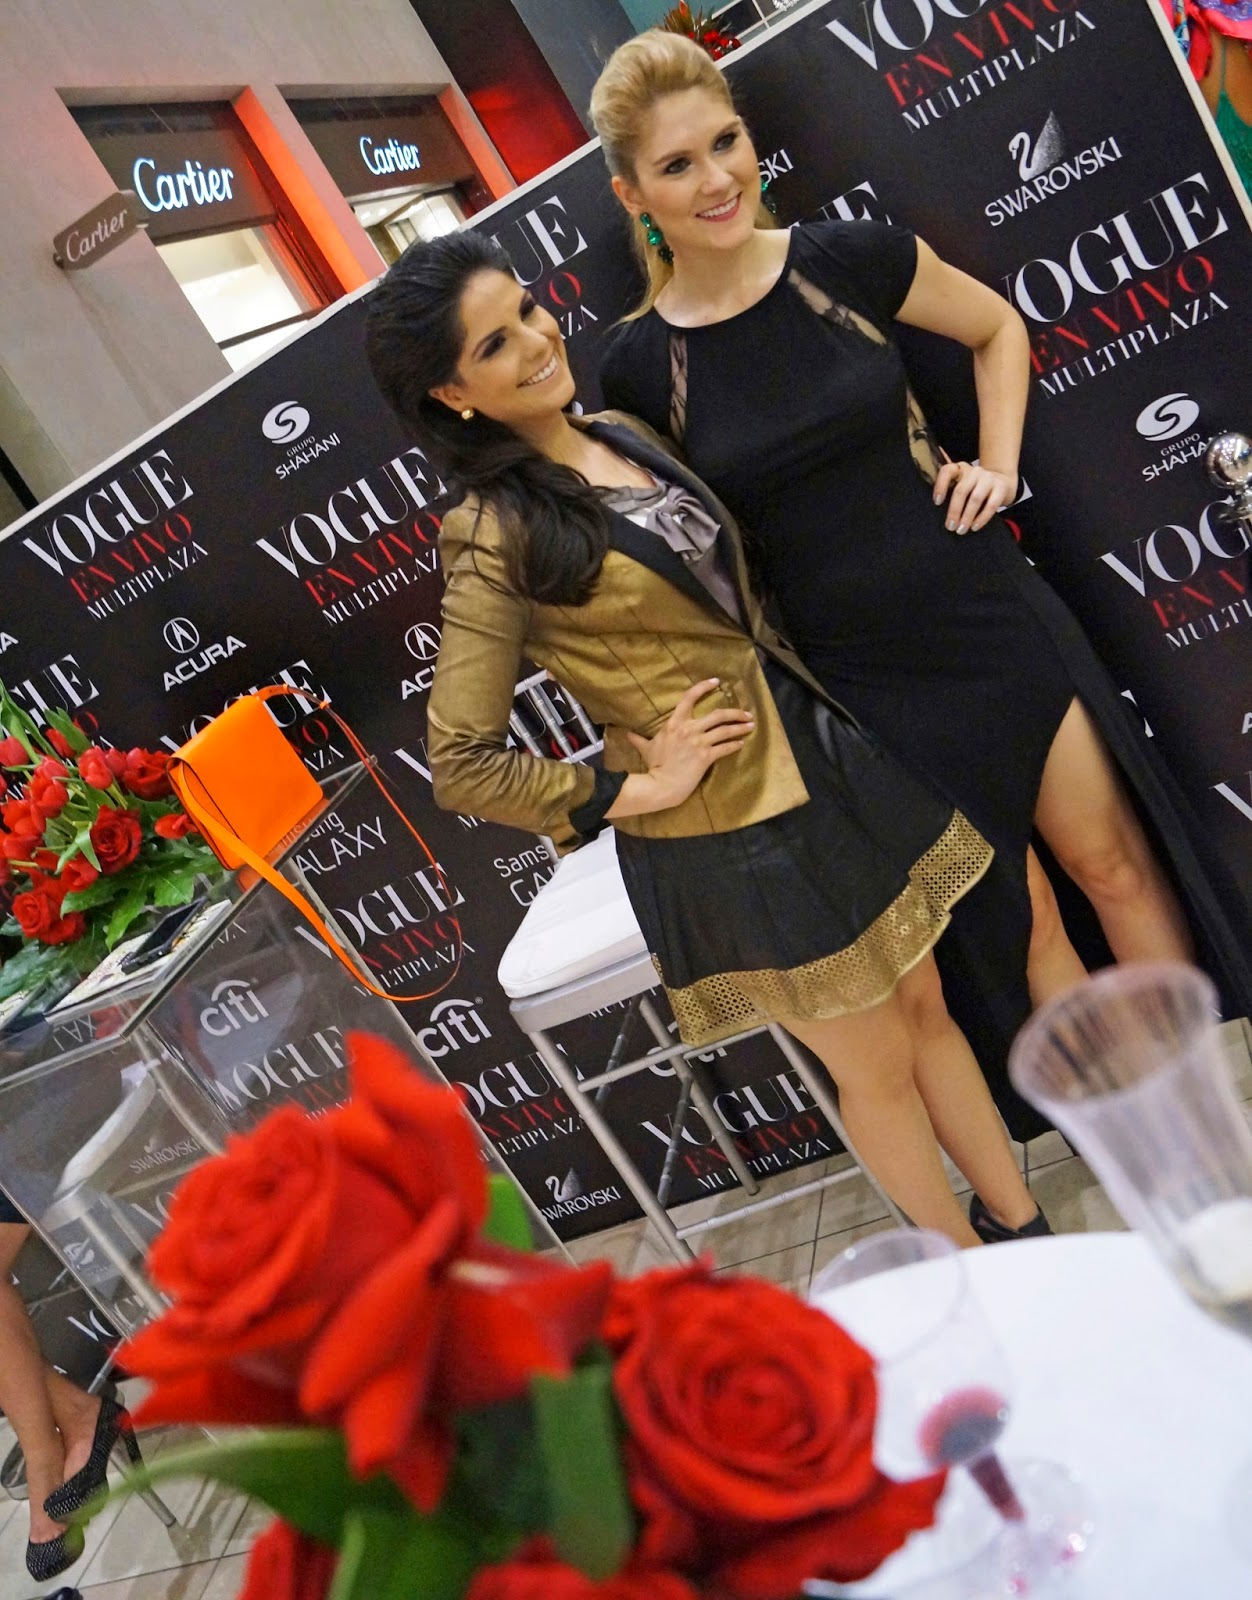 Vogue en Vivo Panama Fotos